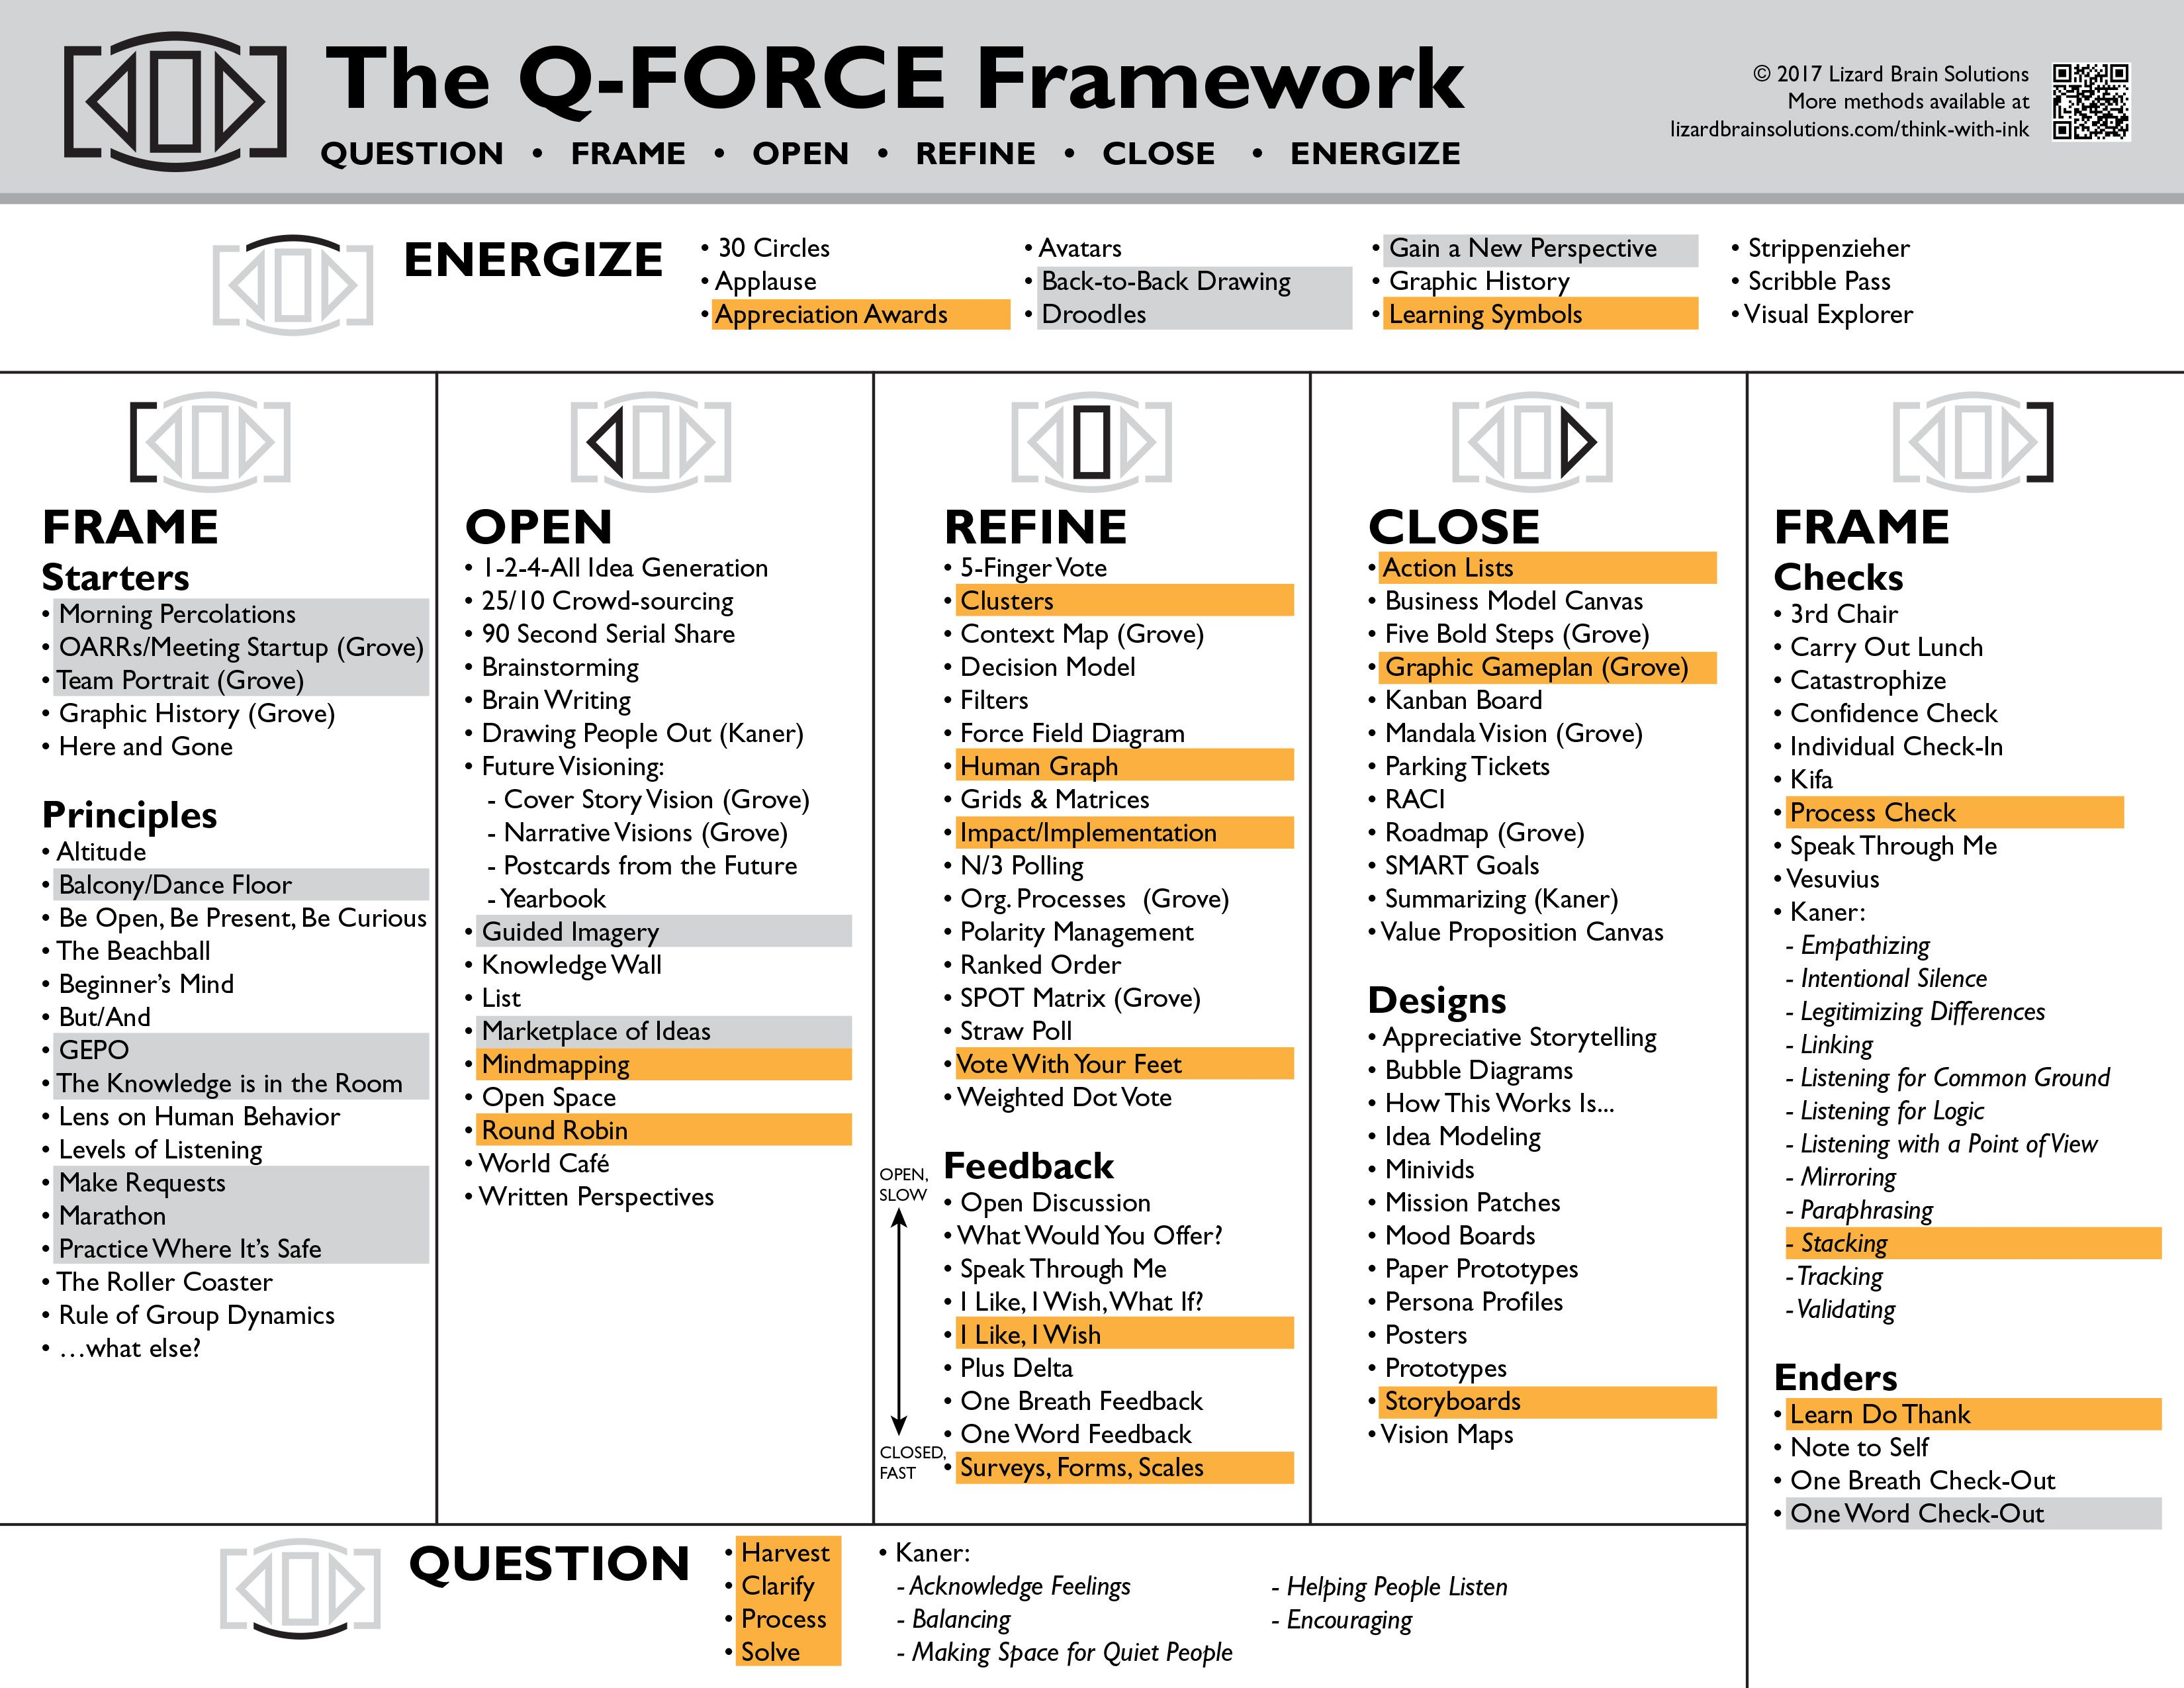 Image Result For Graphic Roadmap Grove Thi Or That Question Back Drawing Mirroring And Paraphrasing